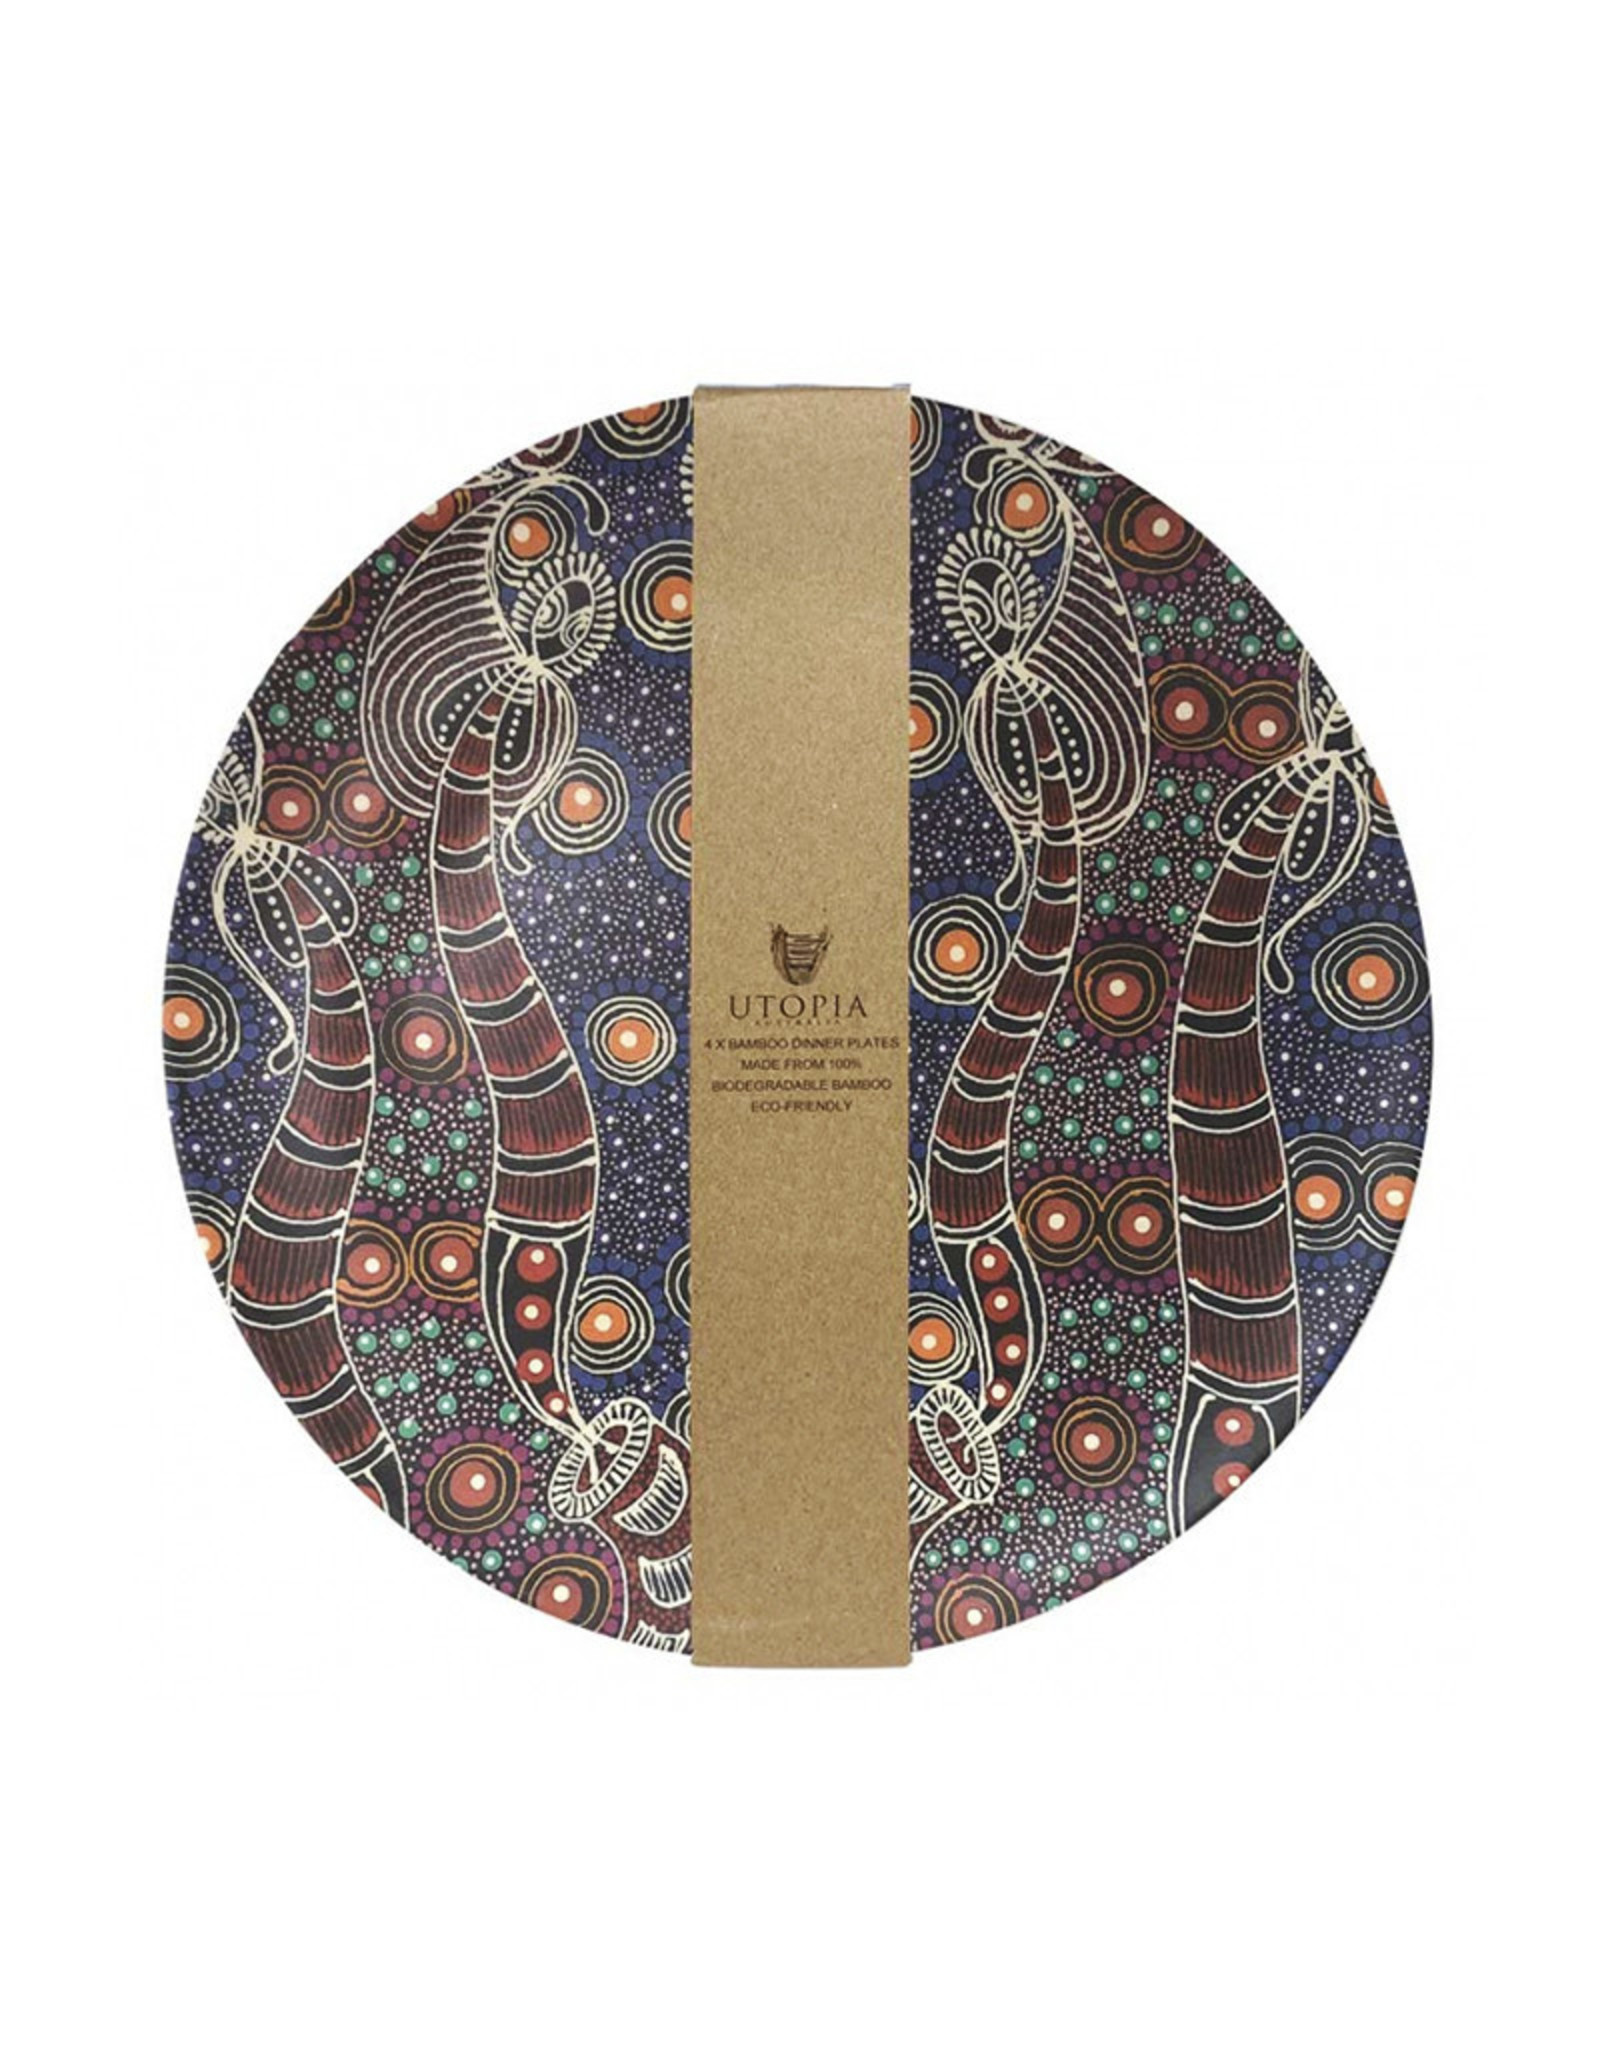 Utopia Bamboo Plate Set - Colleen Wallace